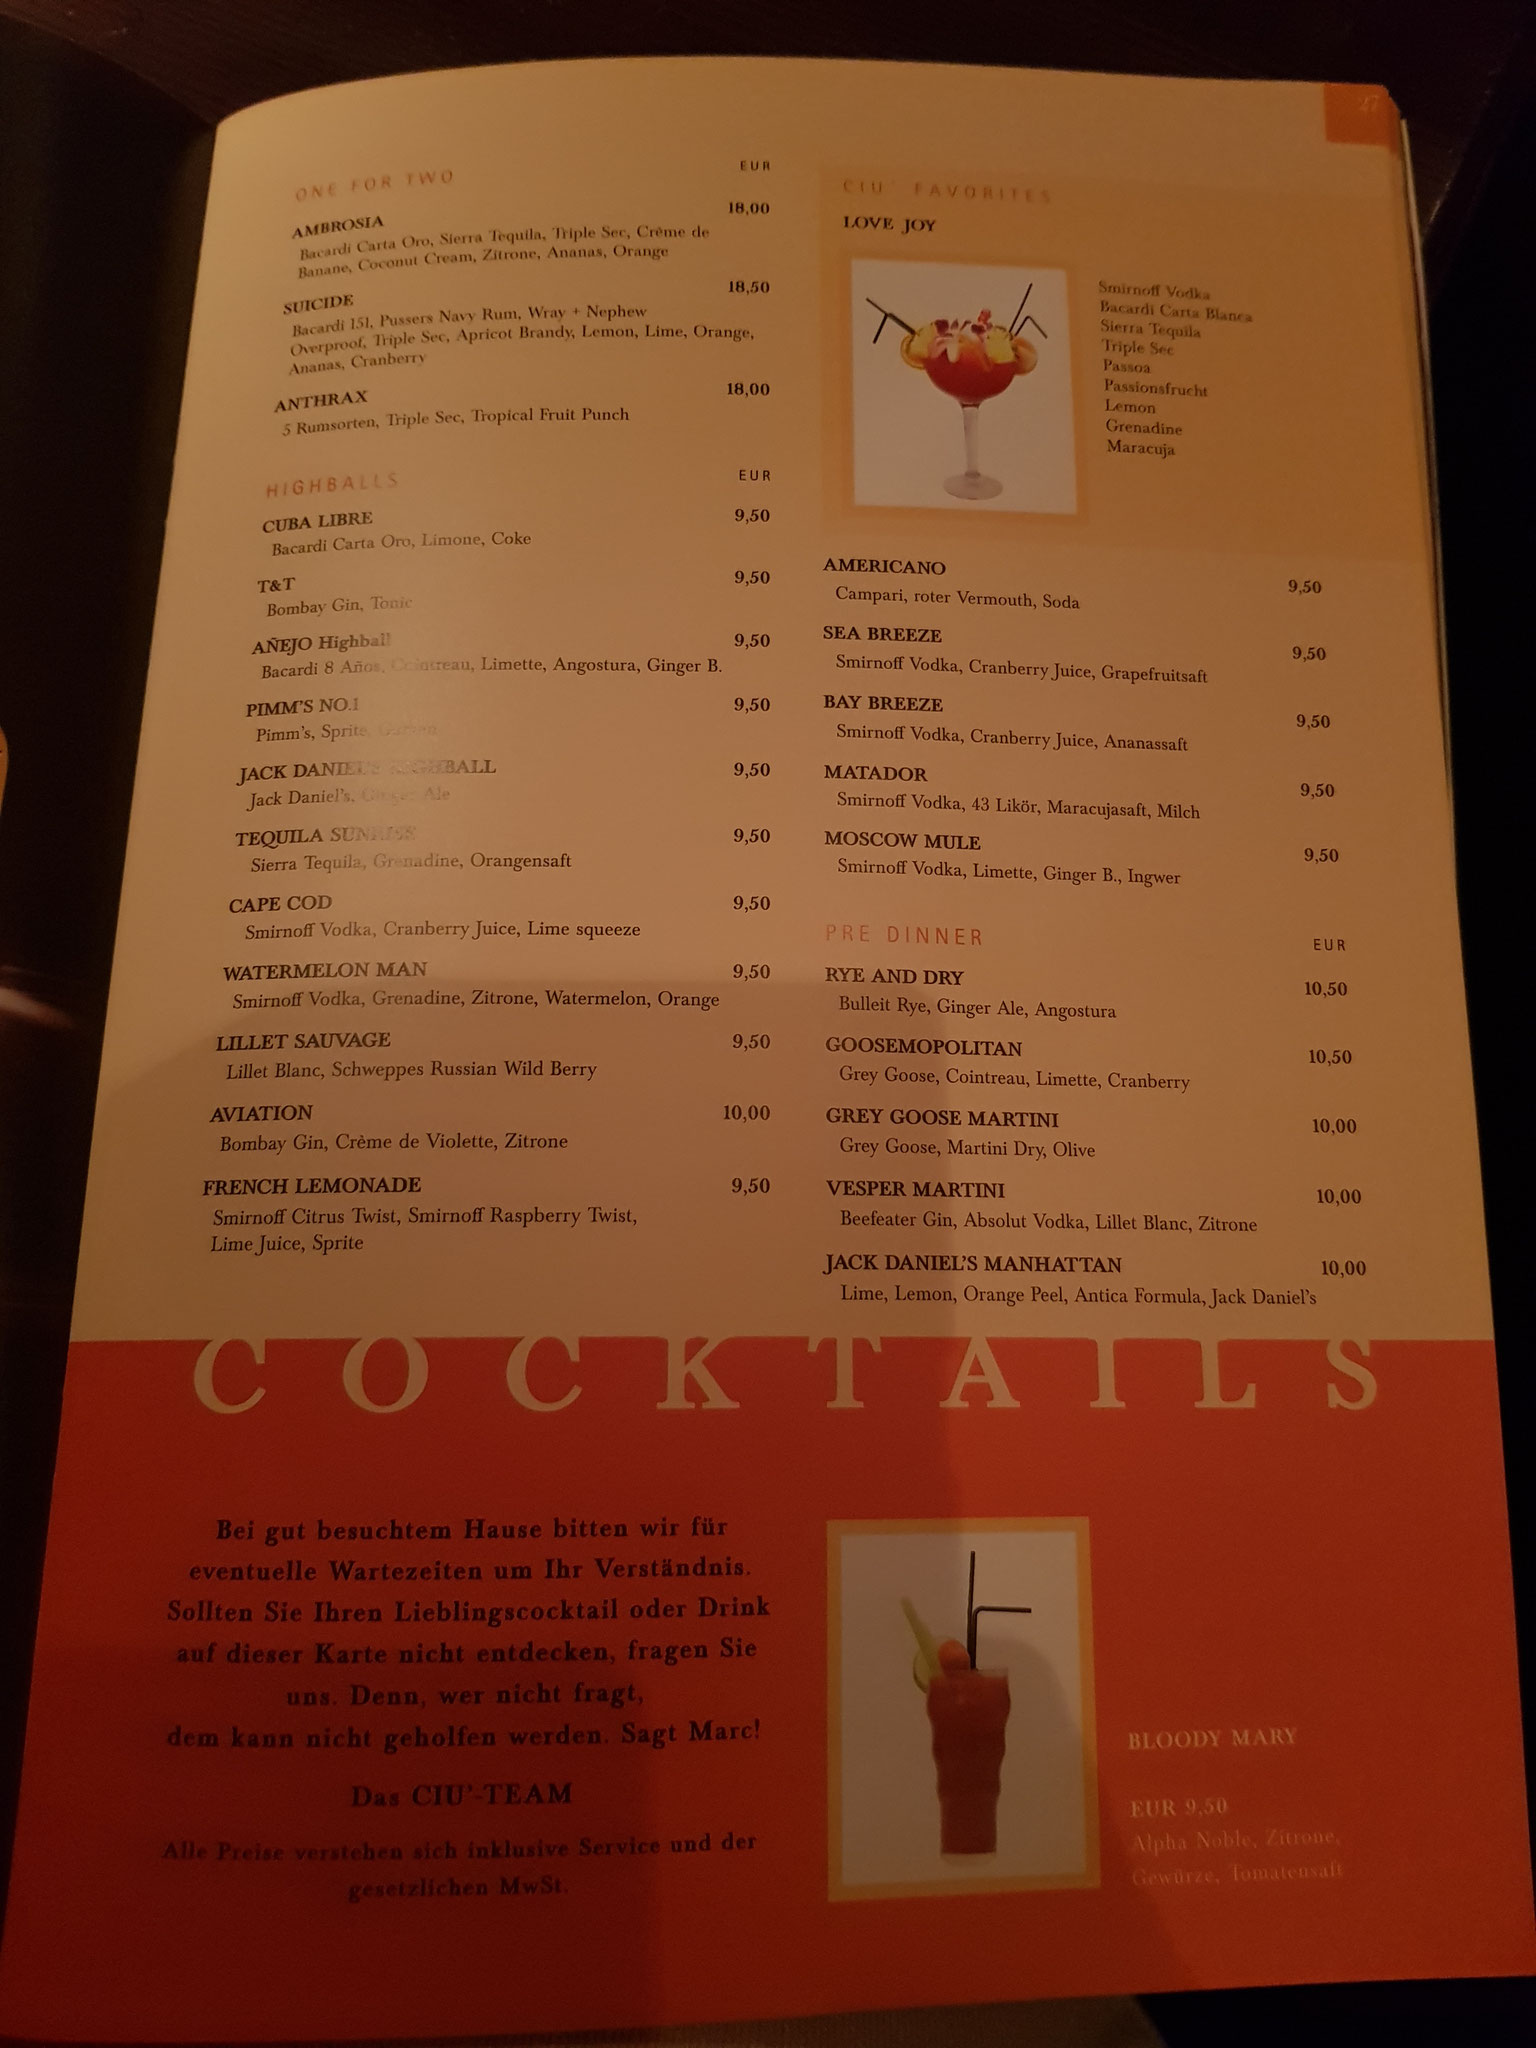 CIU Cocktailkarte